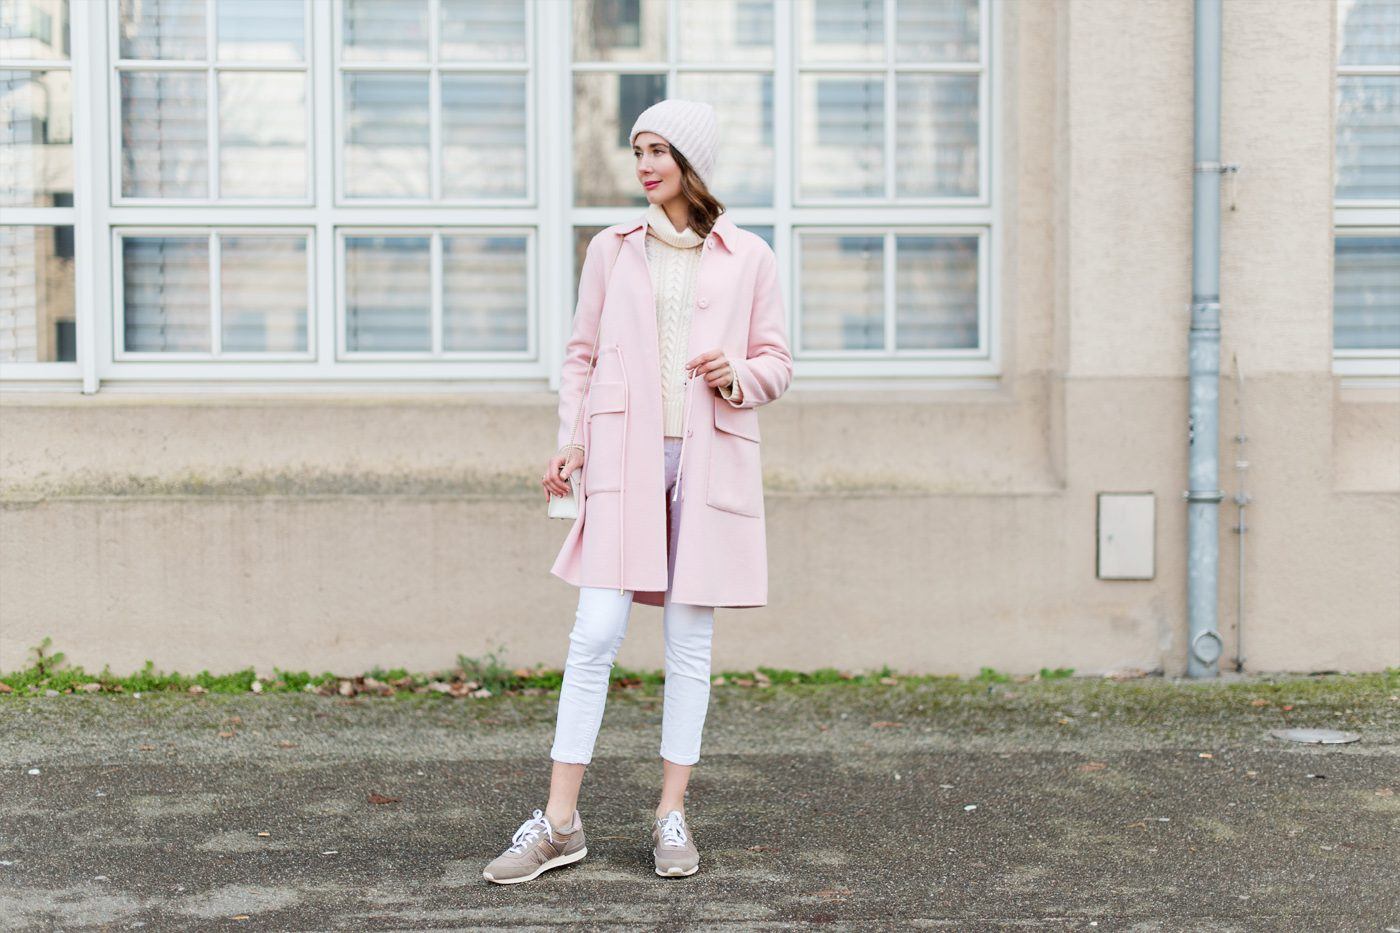 Outfit: Shades of Pink and White